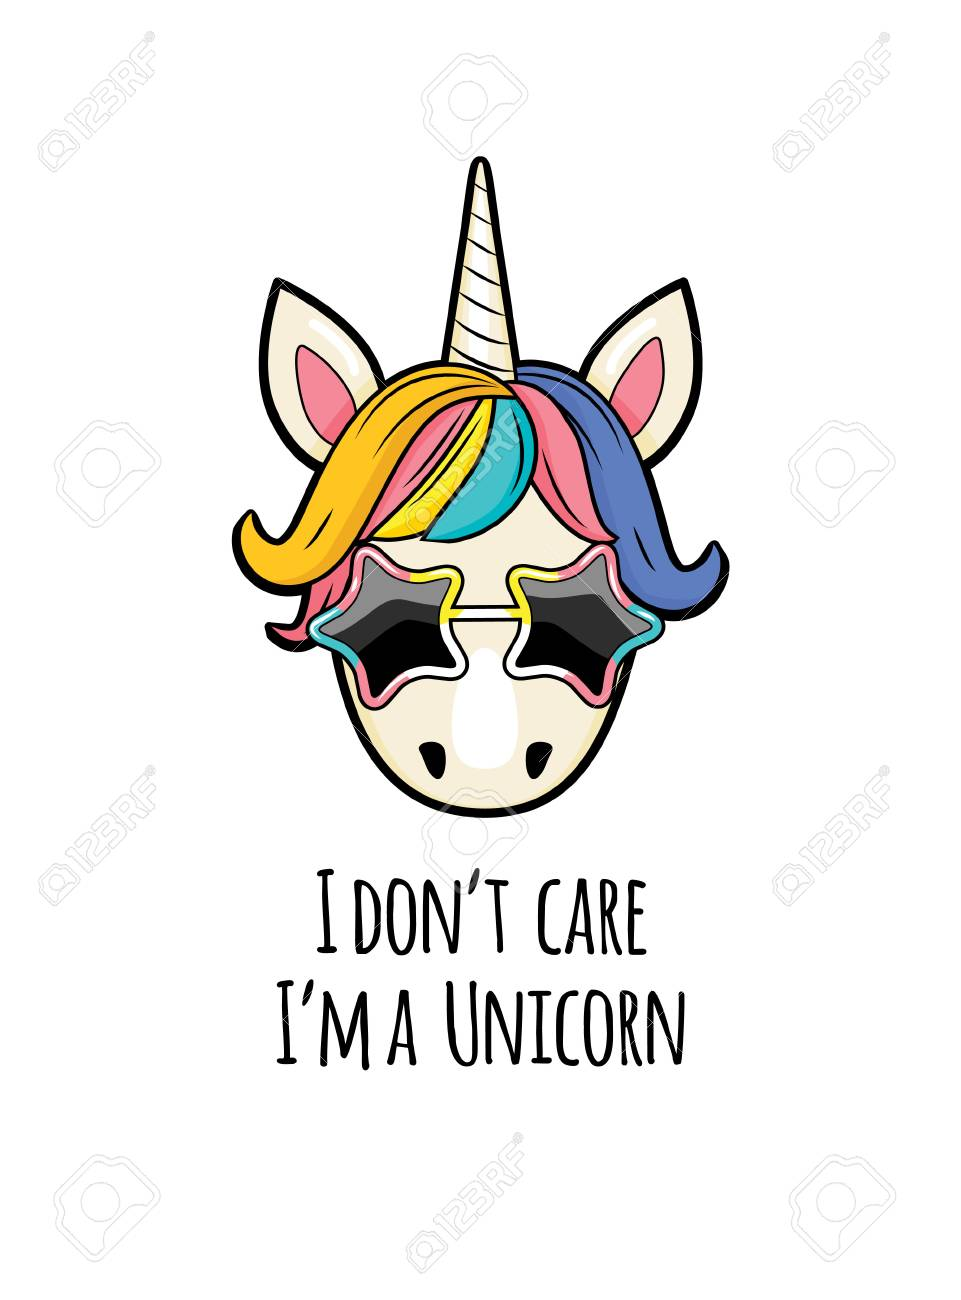 Unicorn Girl Pictures : unicorn, pictures, Unicorn, Quotes., Portrait, Funny, With.., Royalty, Cliparts,, Vectors,, Stock, Illustration., Image, 124682717.